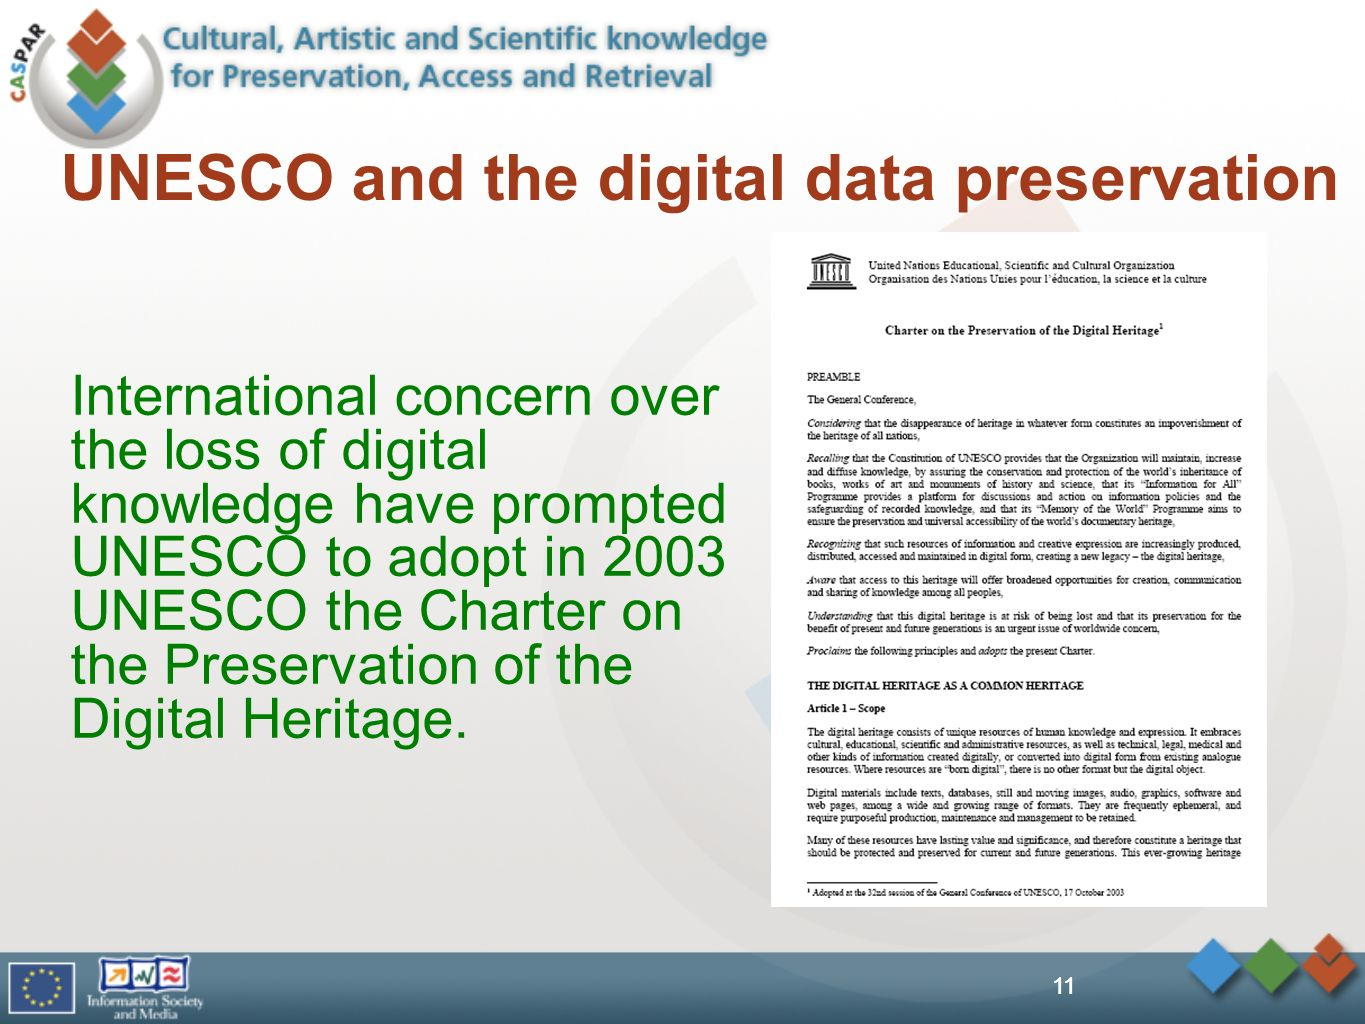 11 UNESCO and the digital data preservation International concern over the loss of digital knowledge have prompted UNESCO to adopt in 2003 UNESCO the Charter on the Preservation of the Digital Heritage.